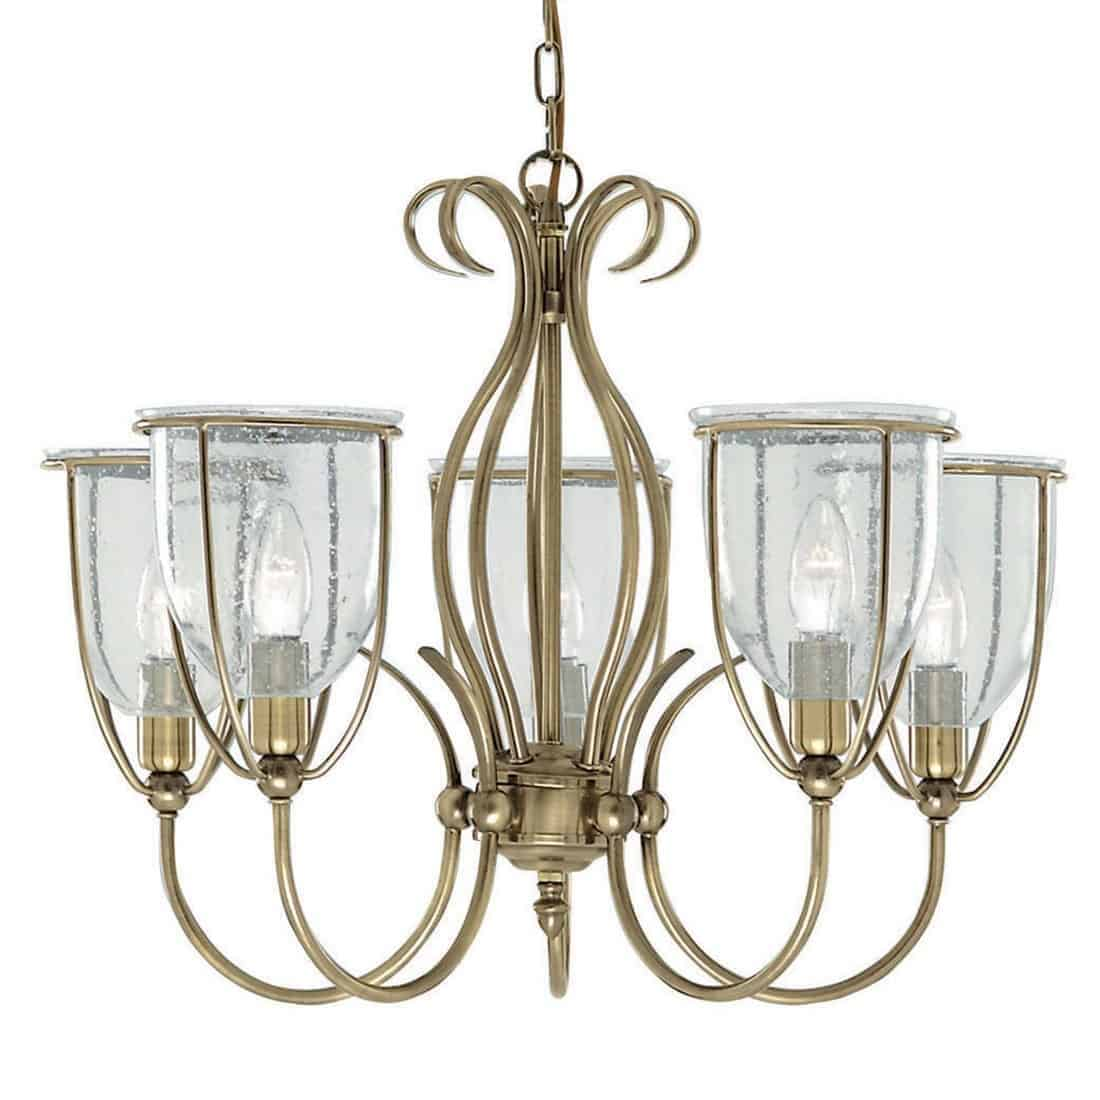 Searchlight 6355-5AB Silhouette Antique Brass 5 Light Fitting with Clear Seeded Glass Shades